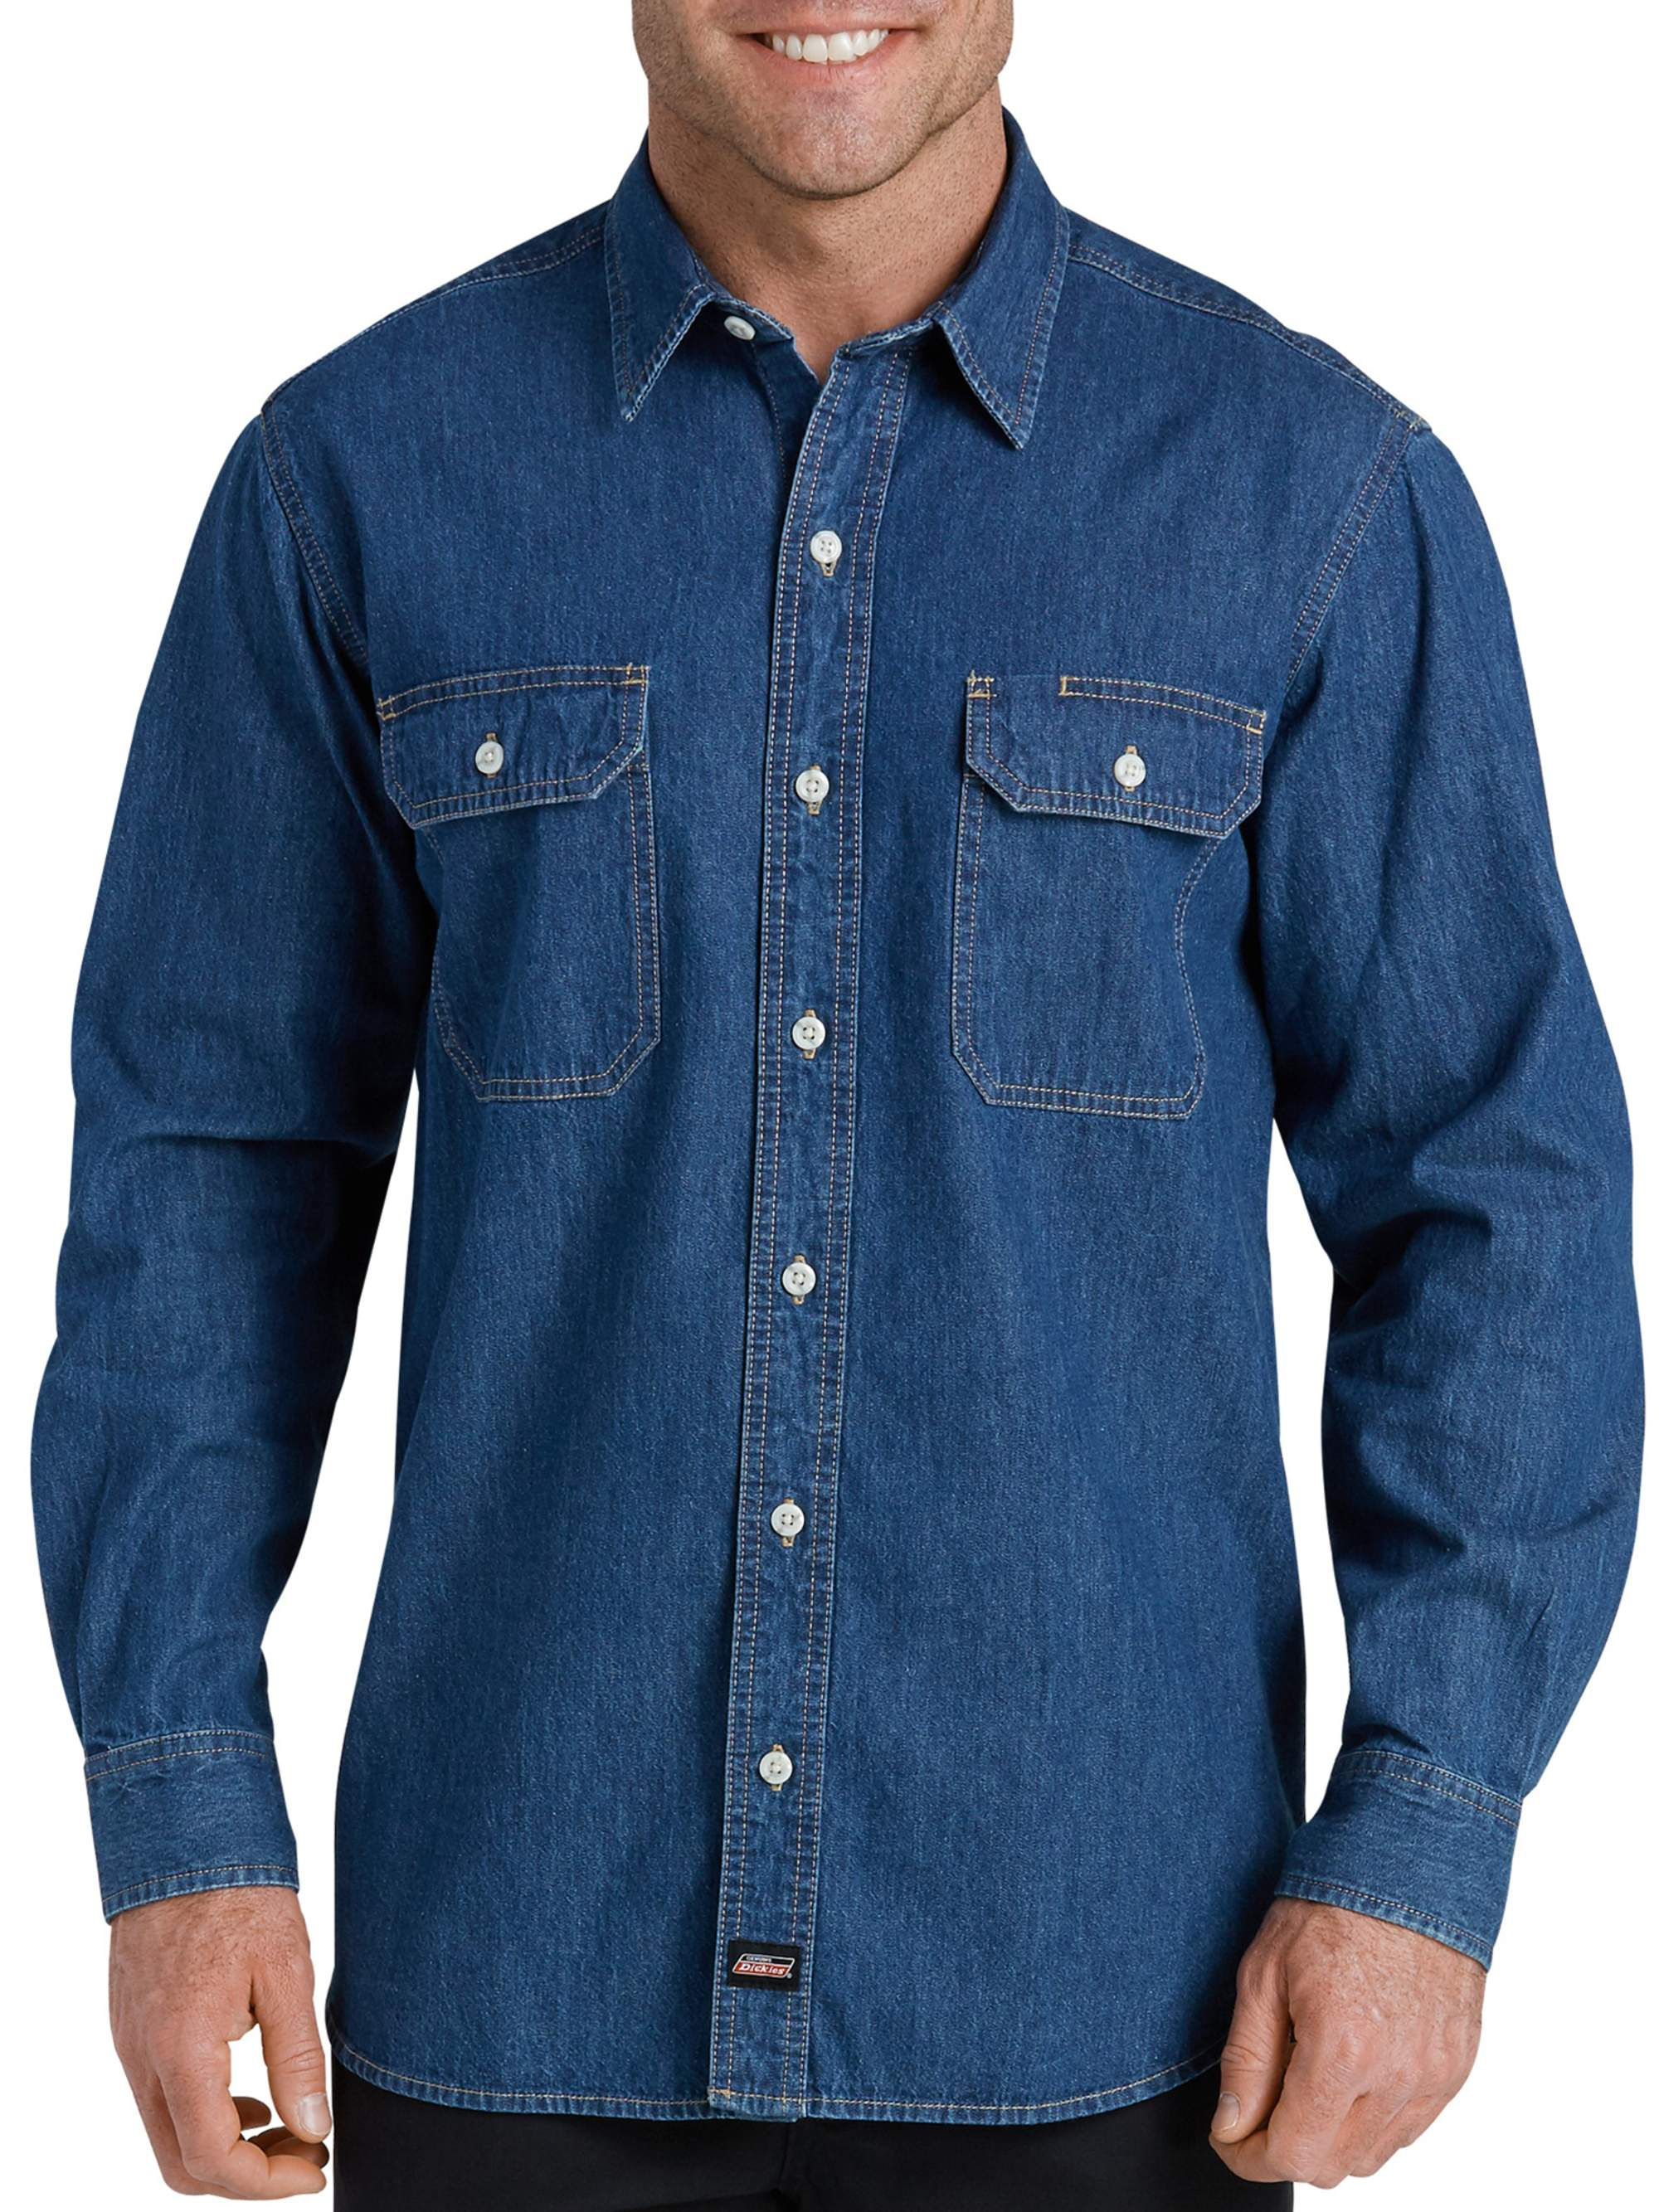 Big Men's Heavy Weight Long Sleeve Denim Shirt